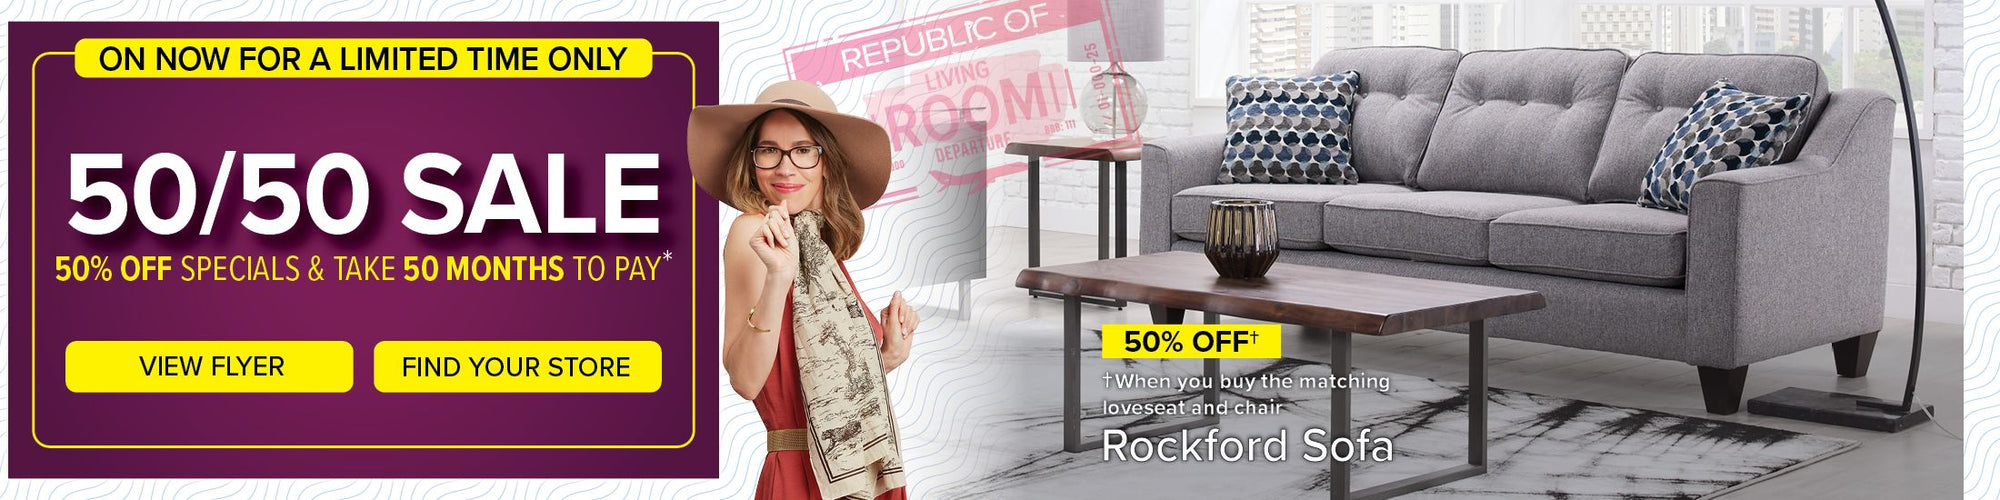 On now for a limited time only. 50/50 Sale. 50% Off specials & take 50 months to pay. View Flyer. Find Your Store. 50% Off $599 When you buy the matching loveseat and chair. Rockford Sofa